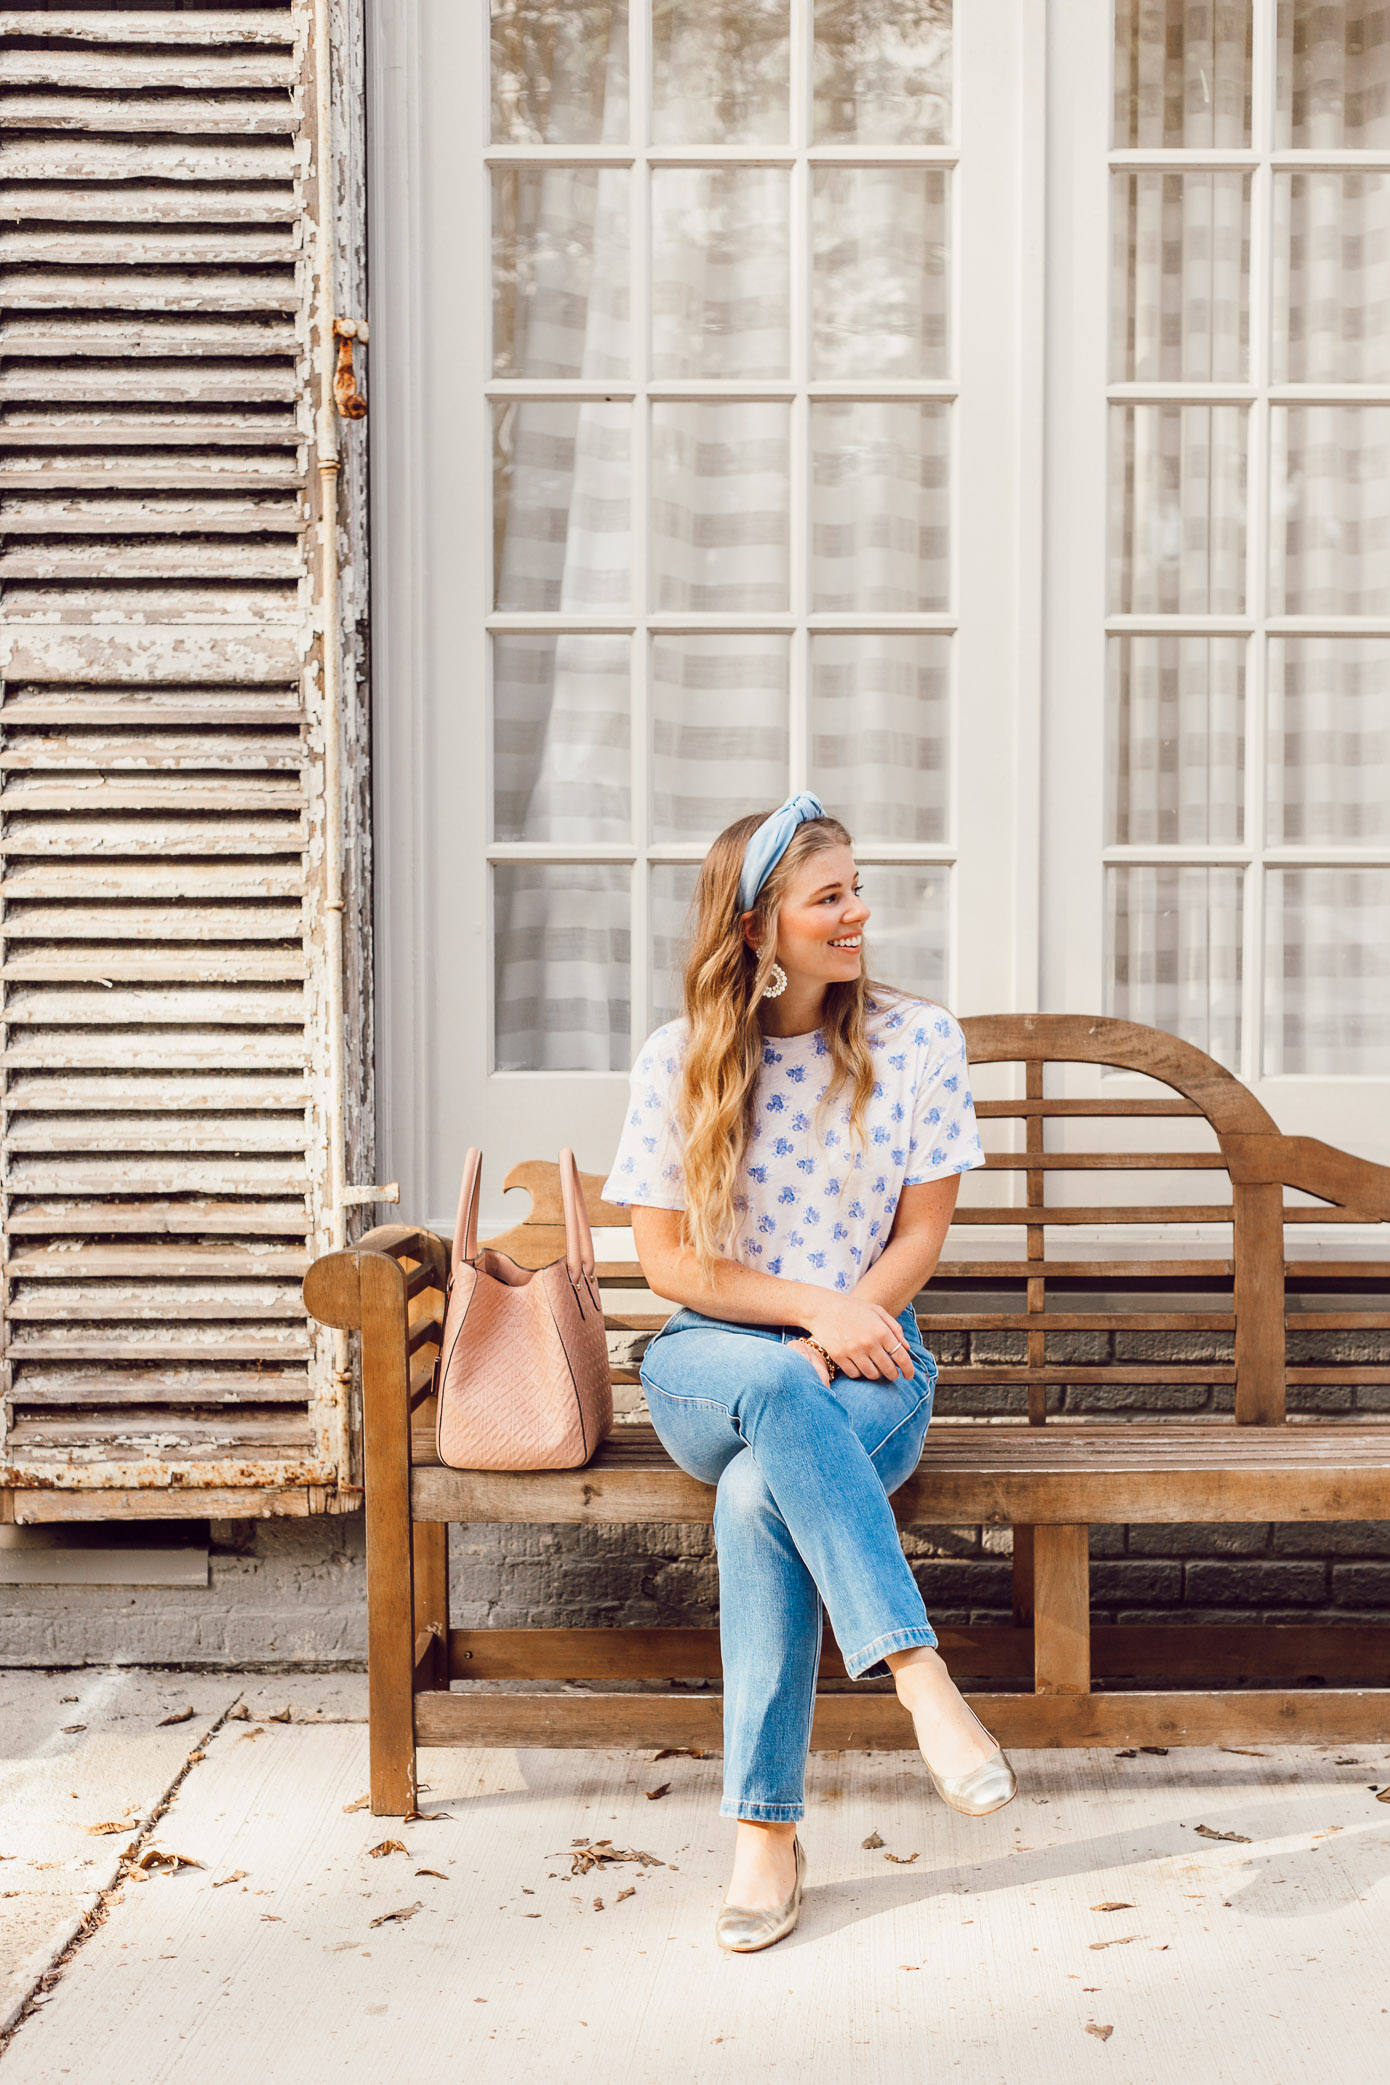 Feminine Casual Fall Style | J.Crew Floral Tee Shirt for Fall | Fashion Faux Pas or Time Tested Trend featured on Louella Reese